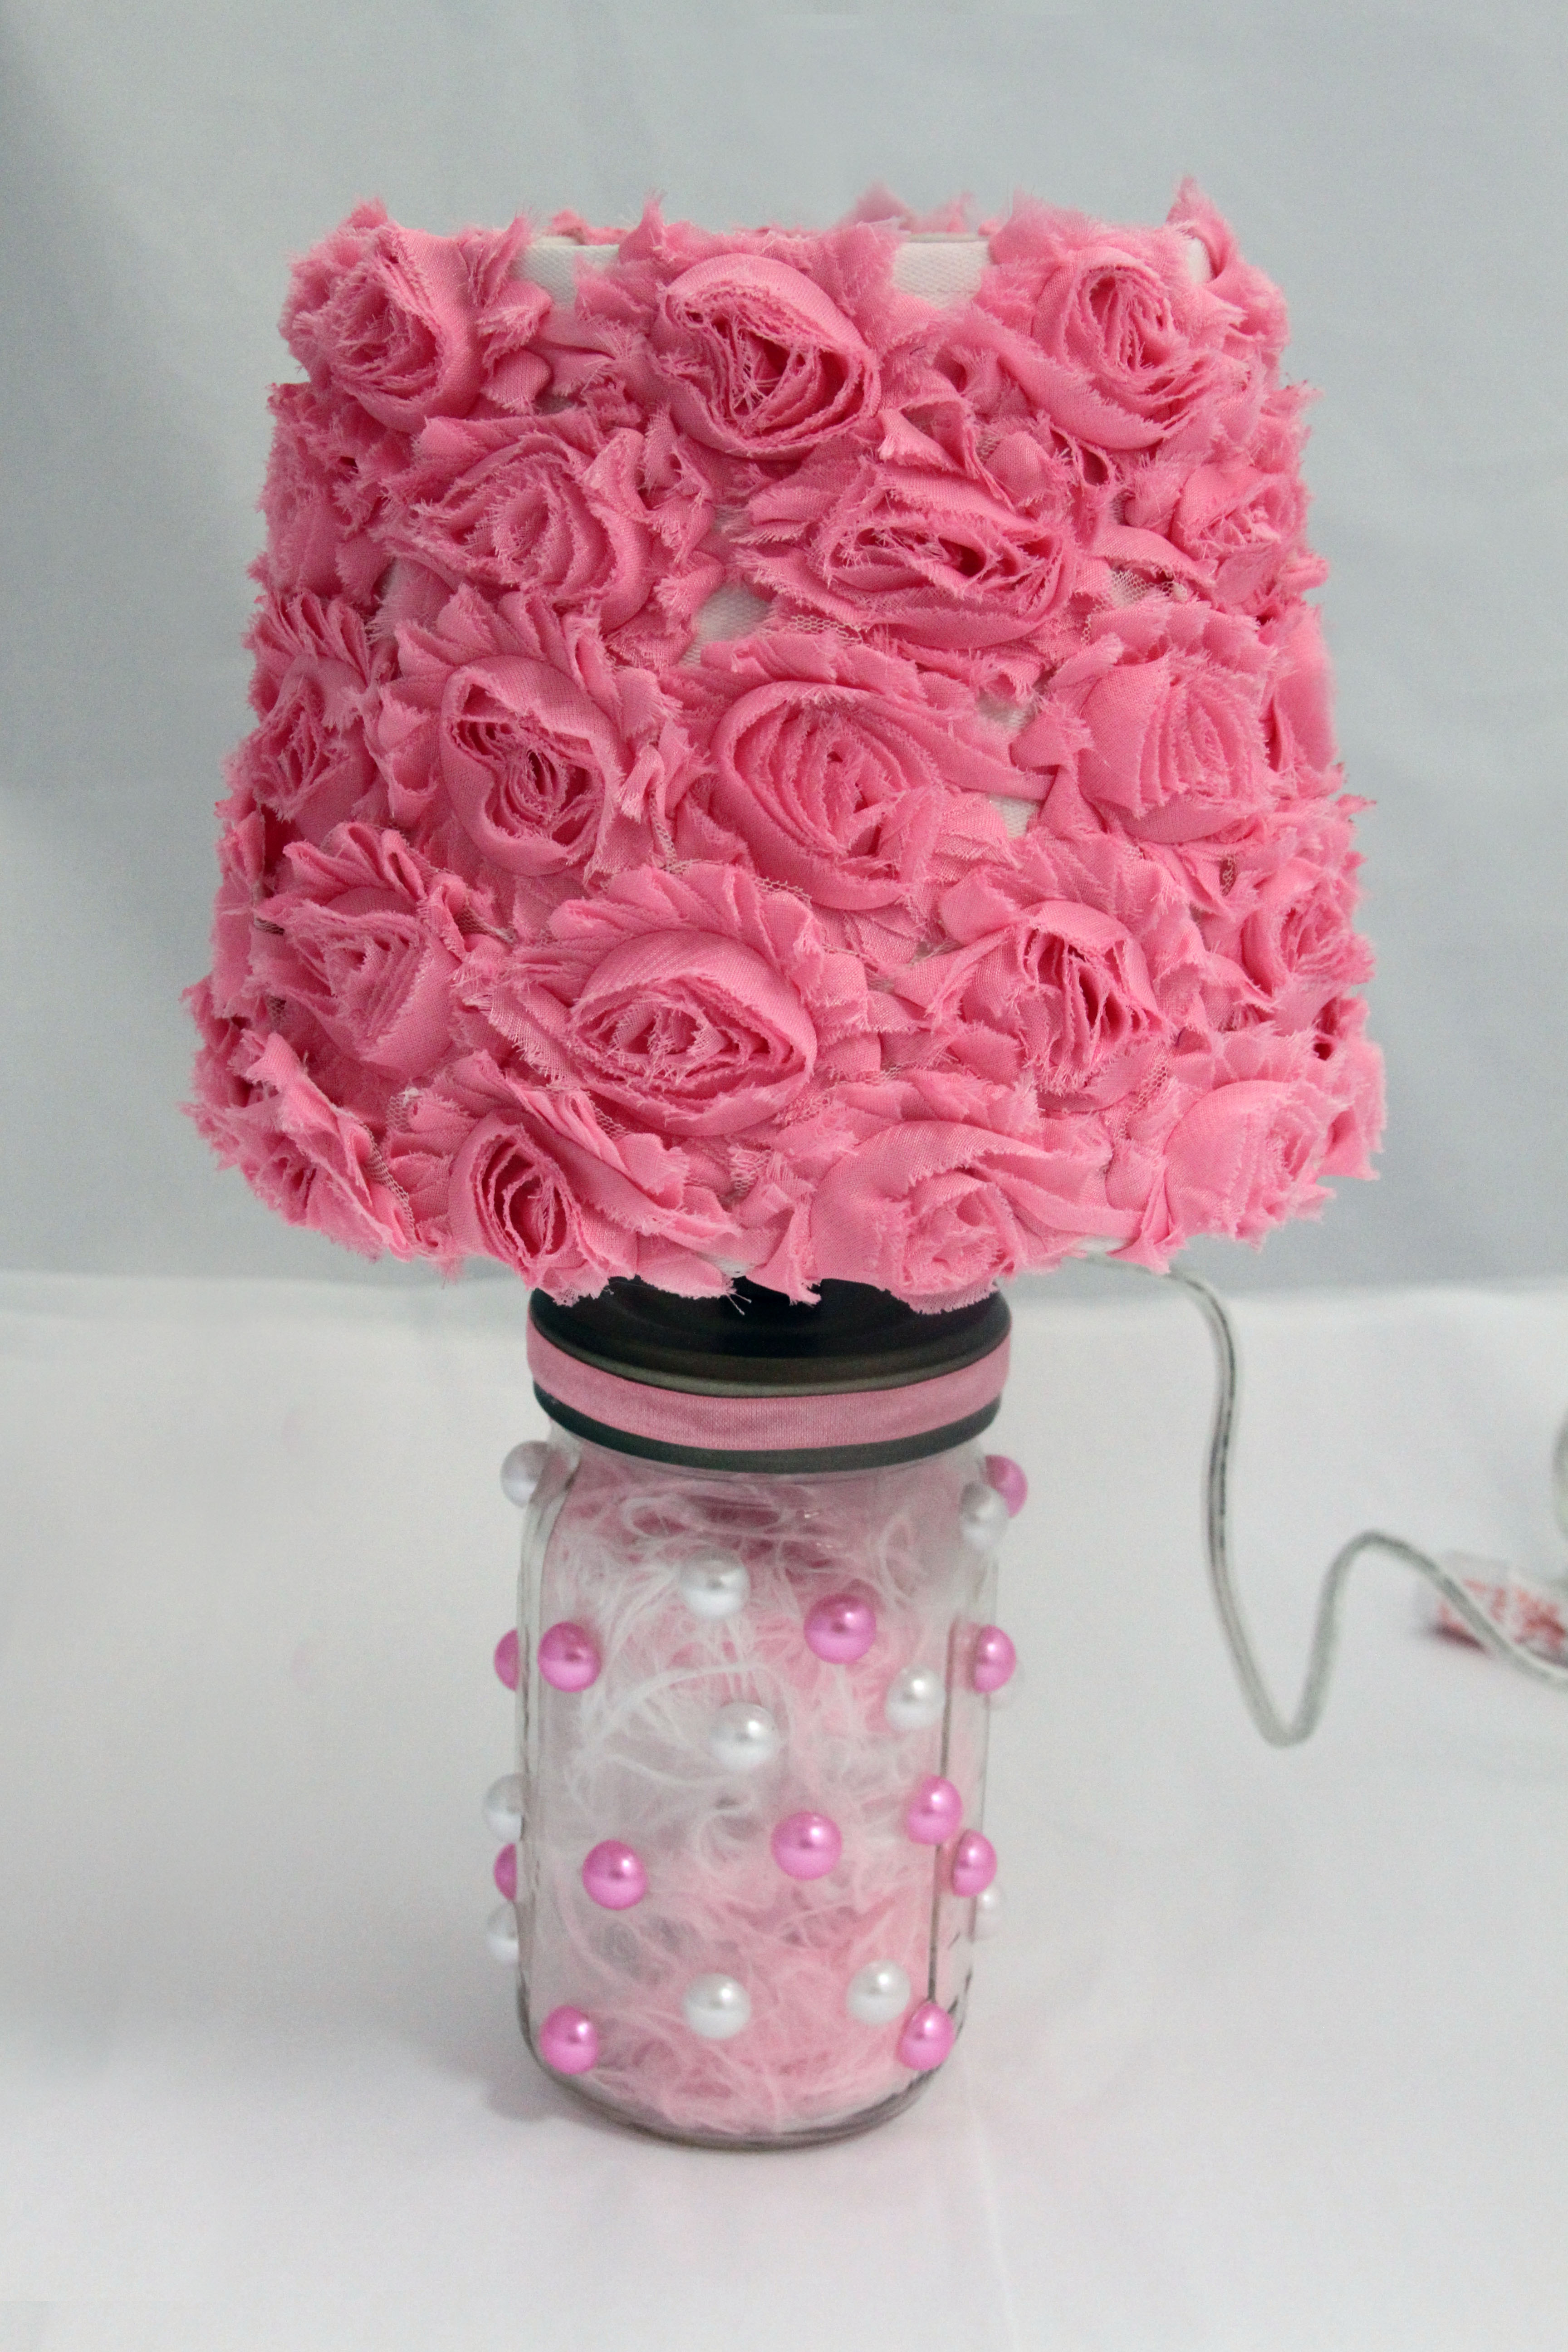 Shabby Chic style lamps diy shabby chic furniture ideas - vintage lamp CNKEARX